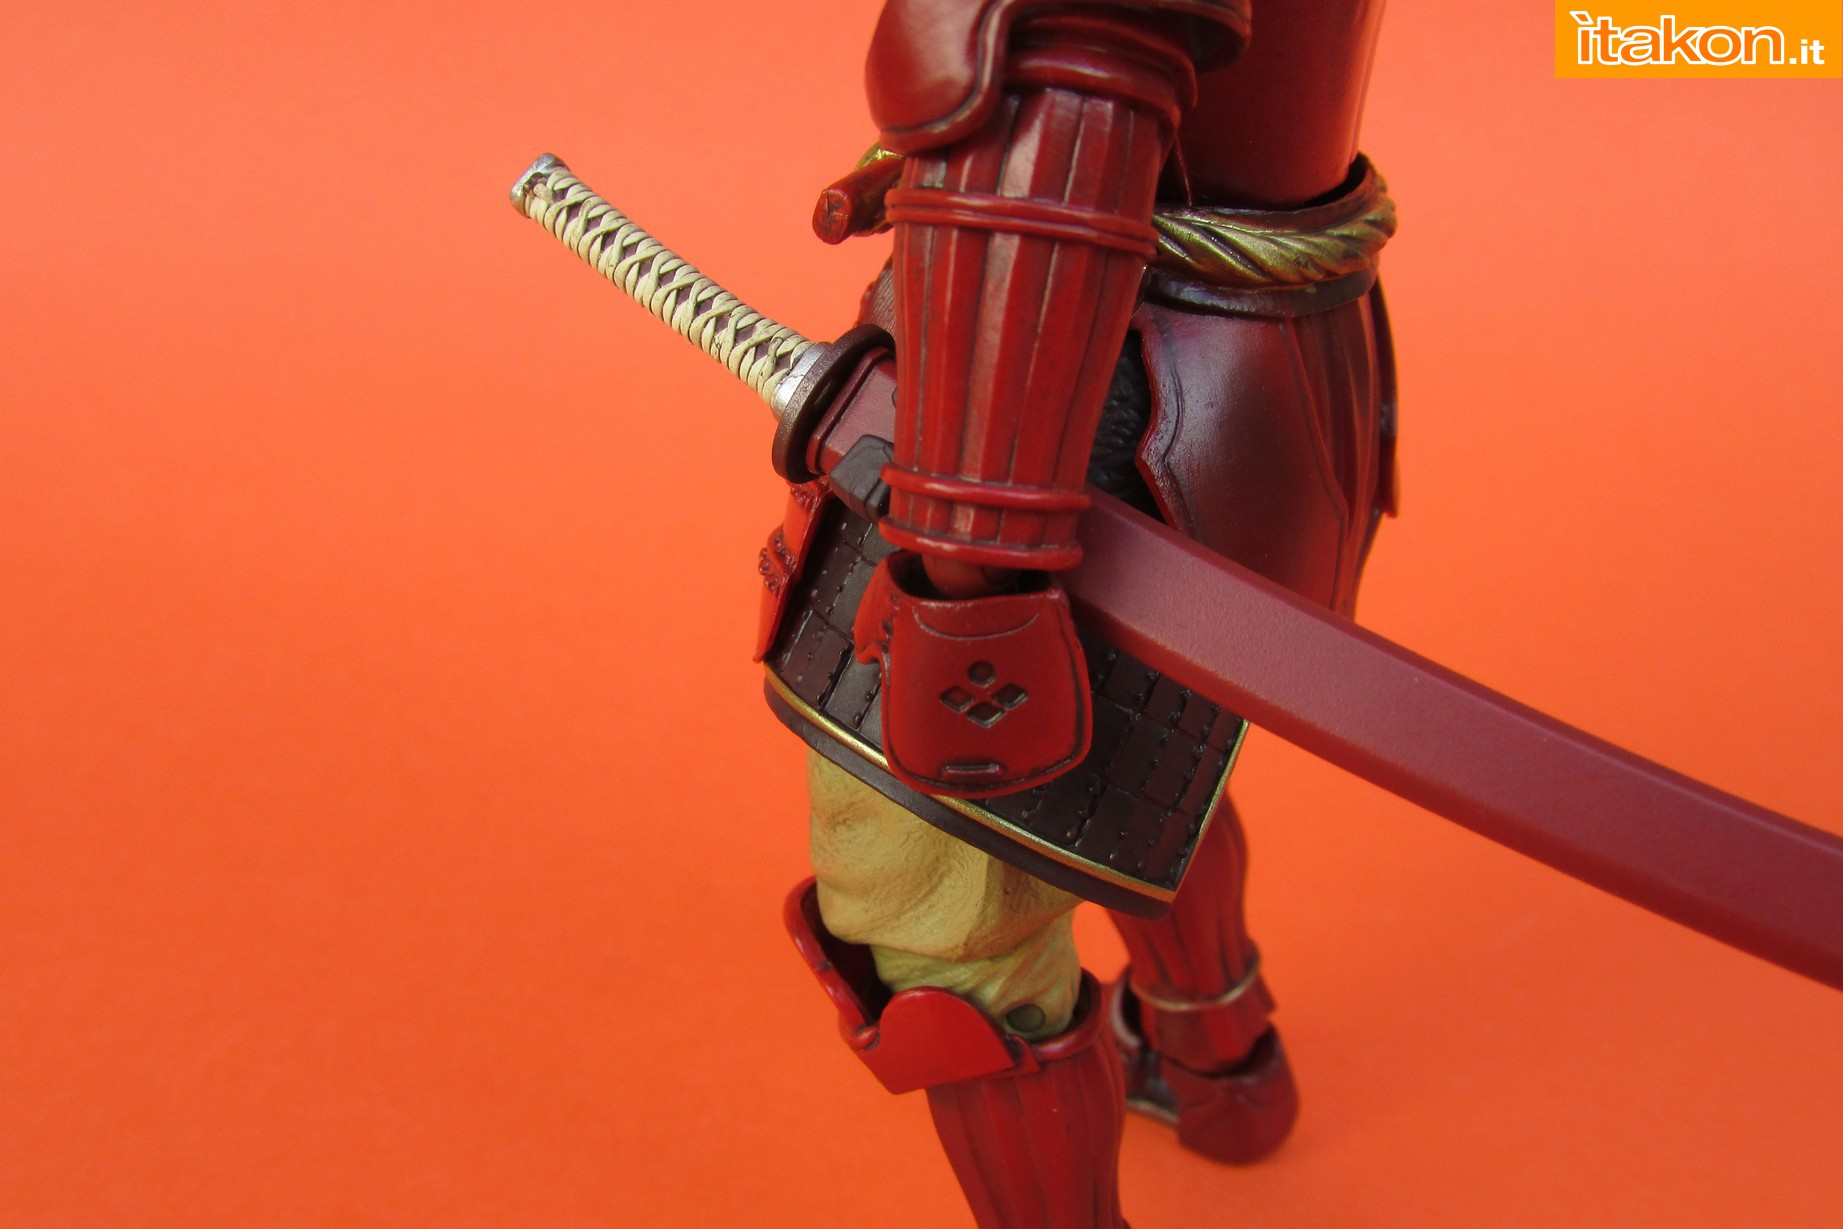 Link a Marvel Comics Koutetsu Samurai Iron Man Mark 3 Meishou MANGA REALIZATION review Bandai Itakon.it25